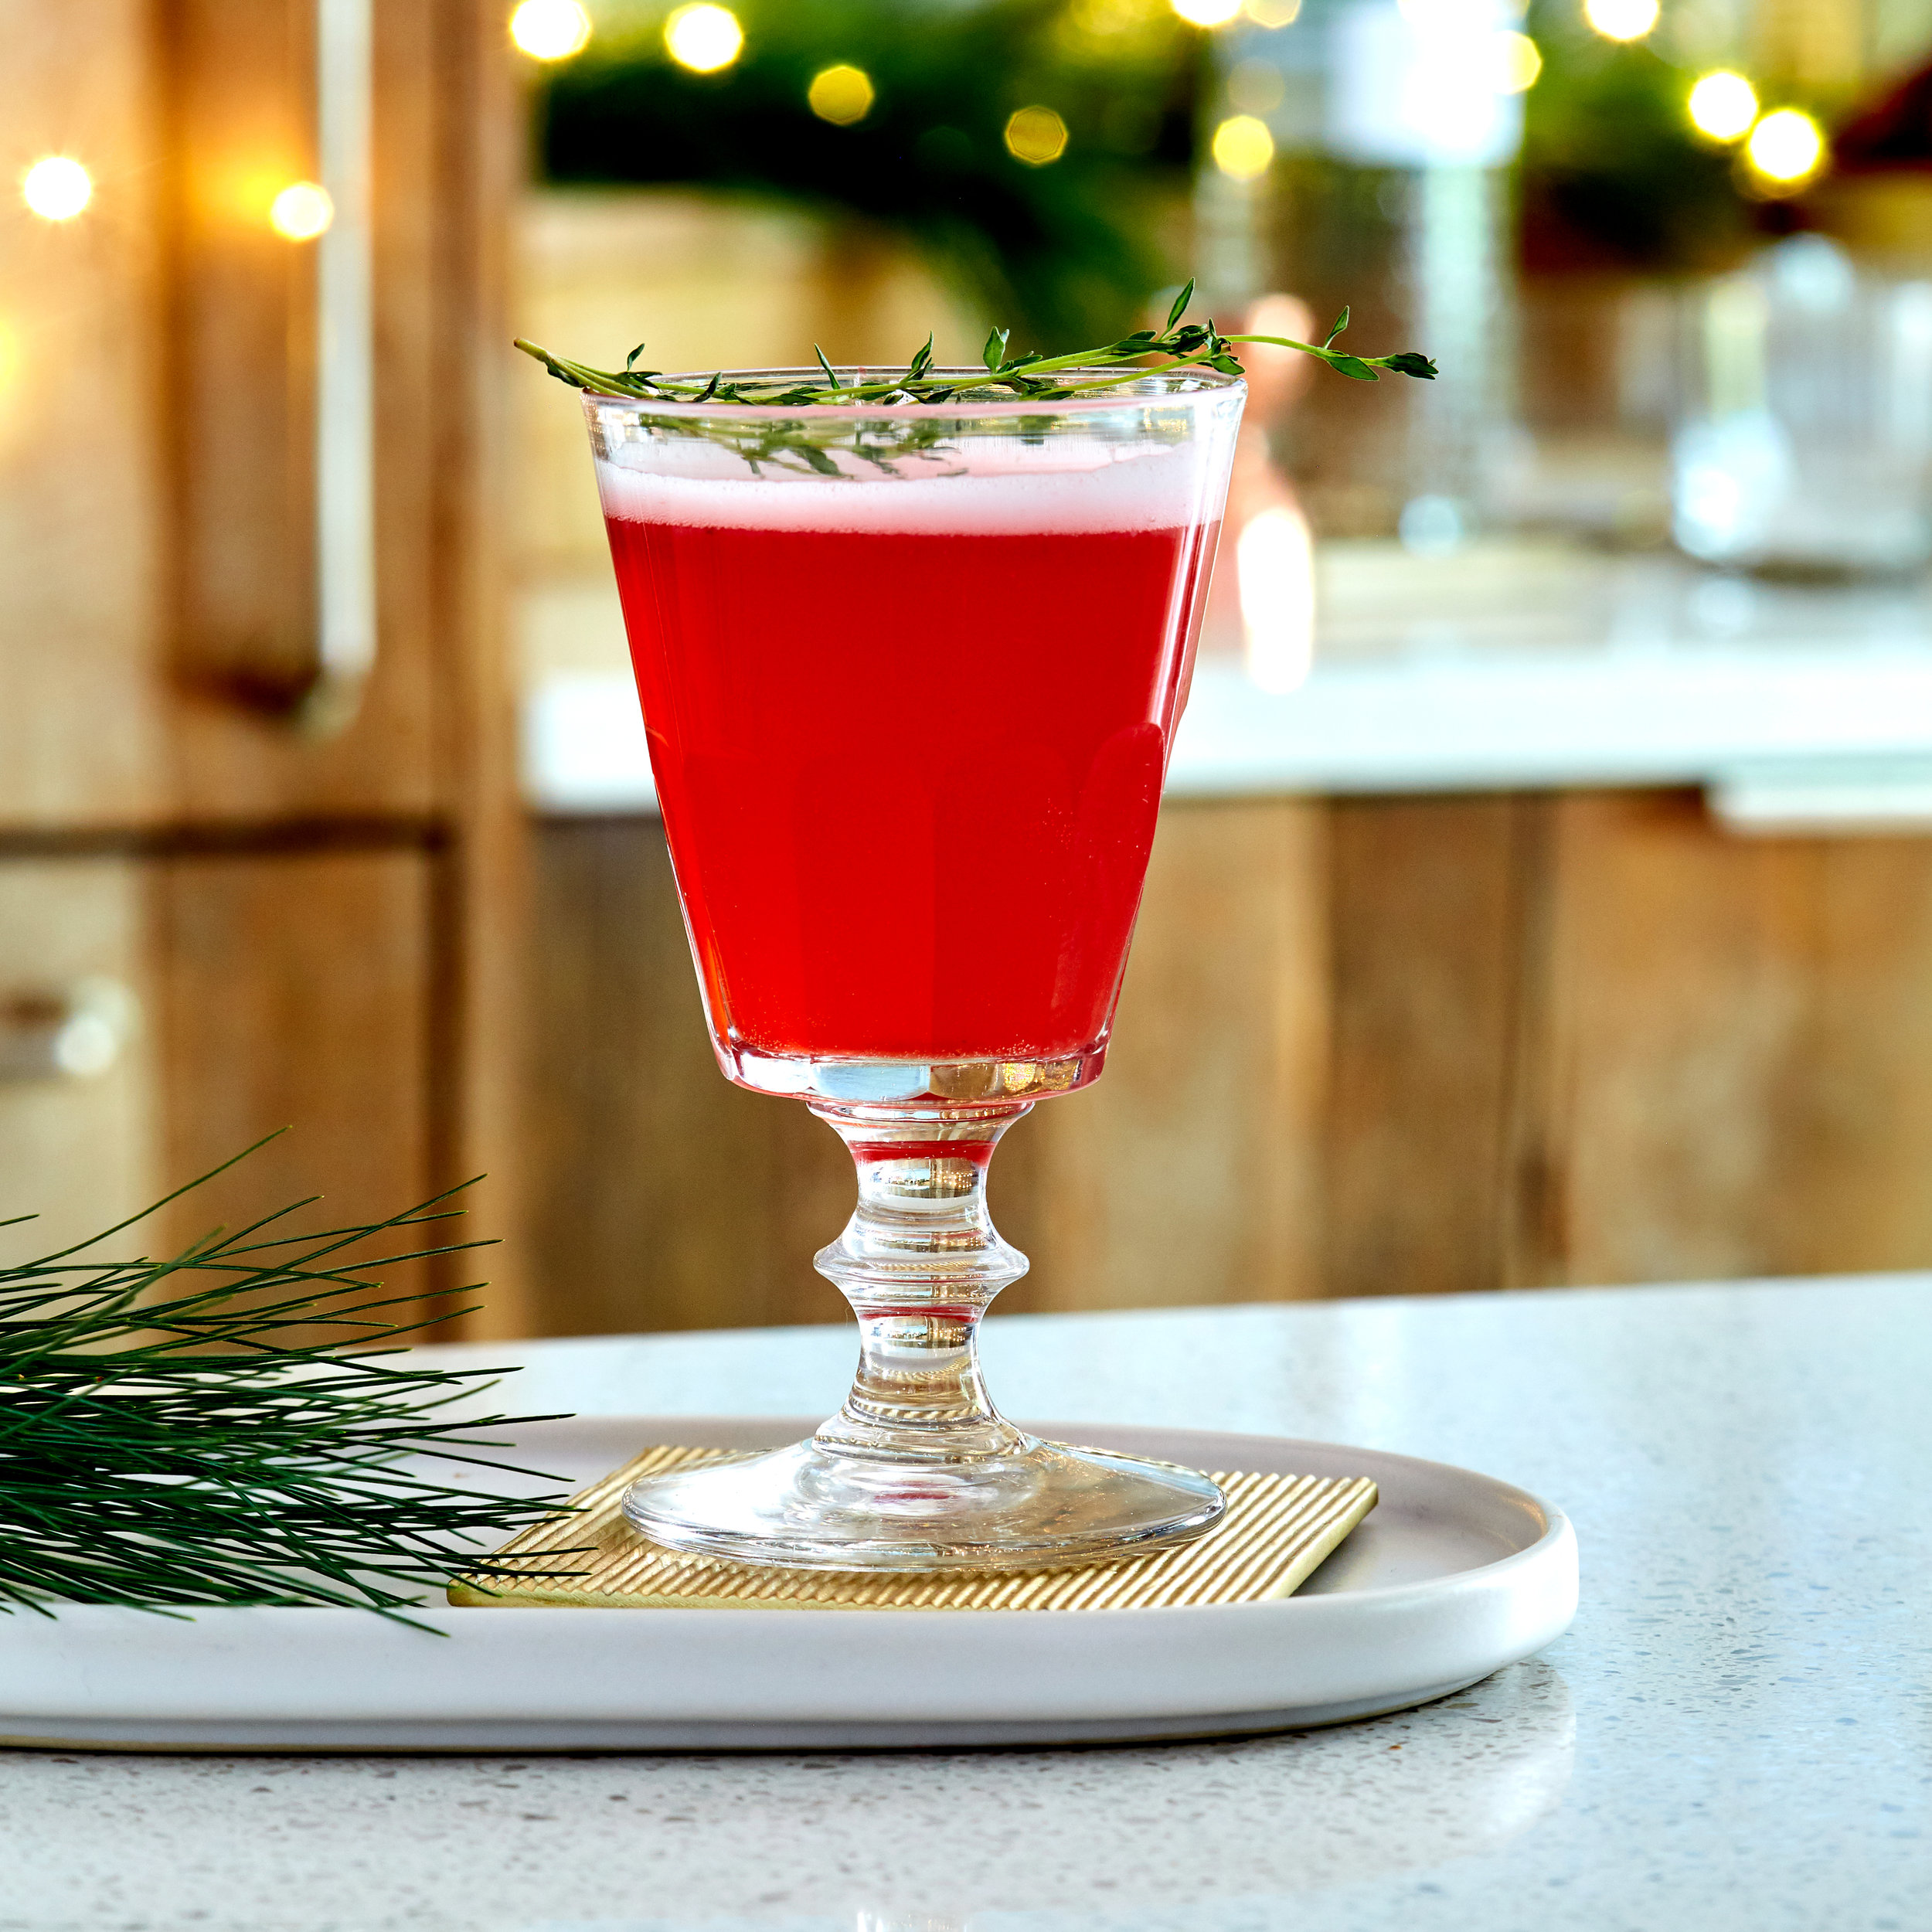 Botanist_Blackberry_HolidayCocktail_cropped (1).jpg